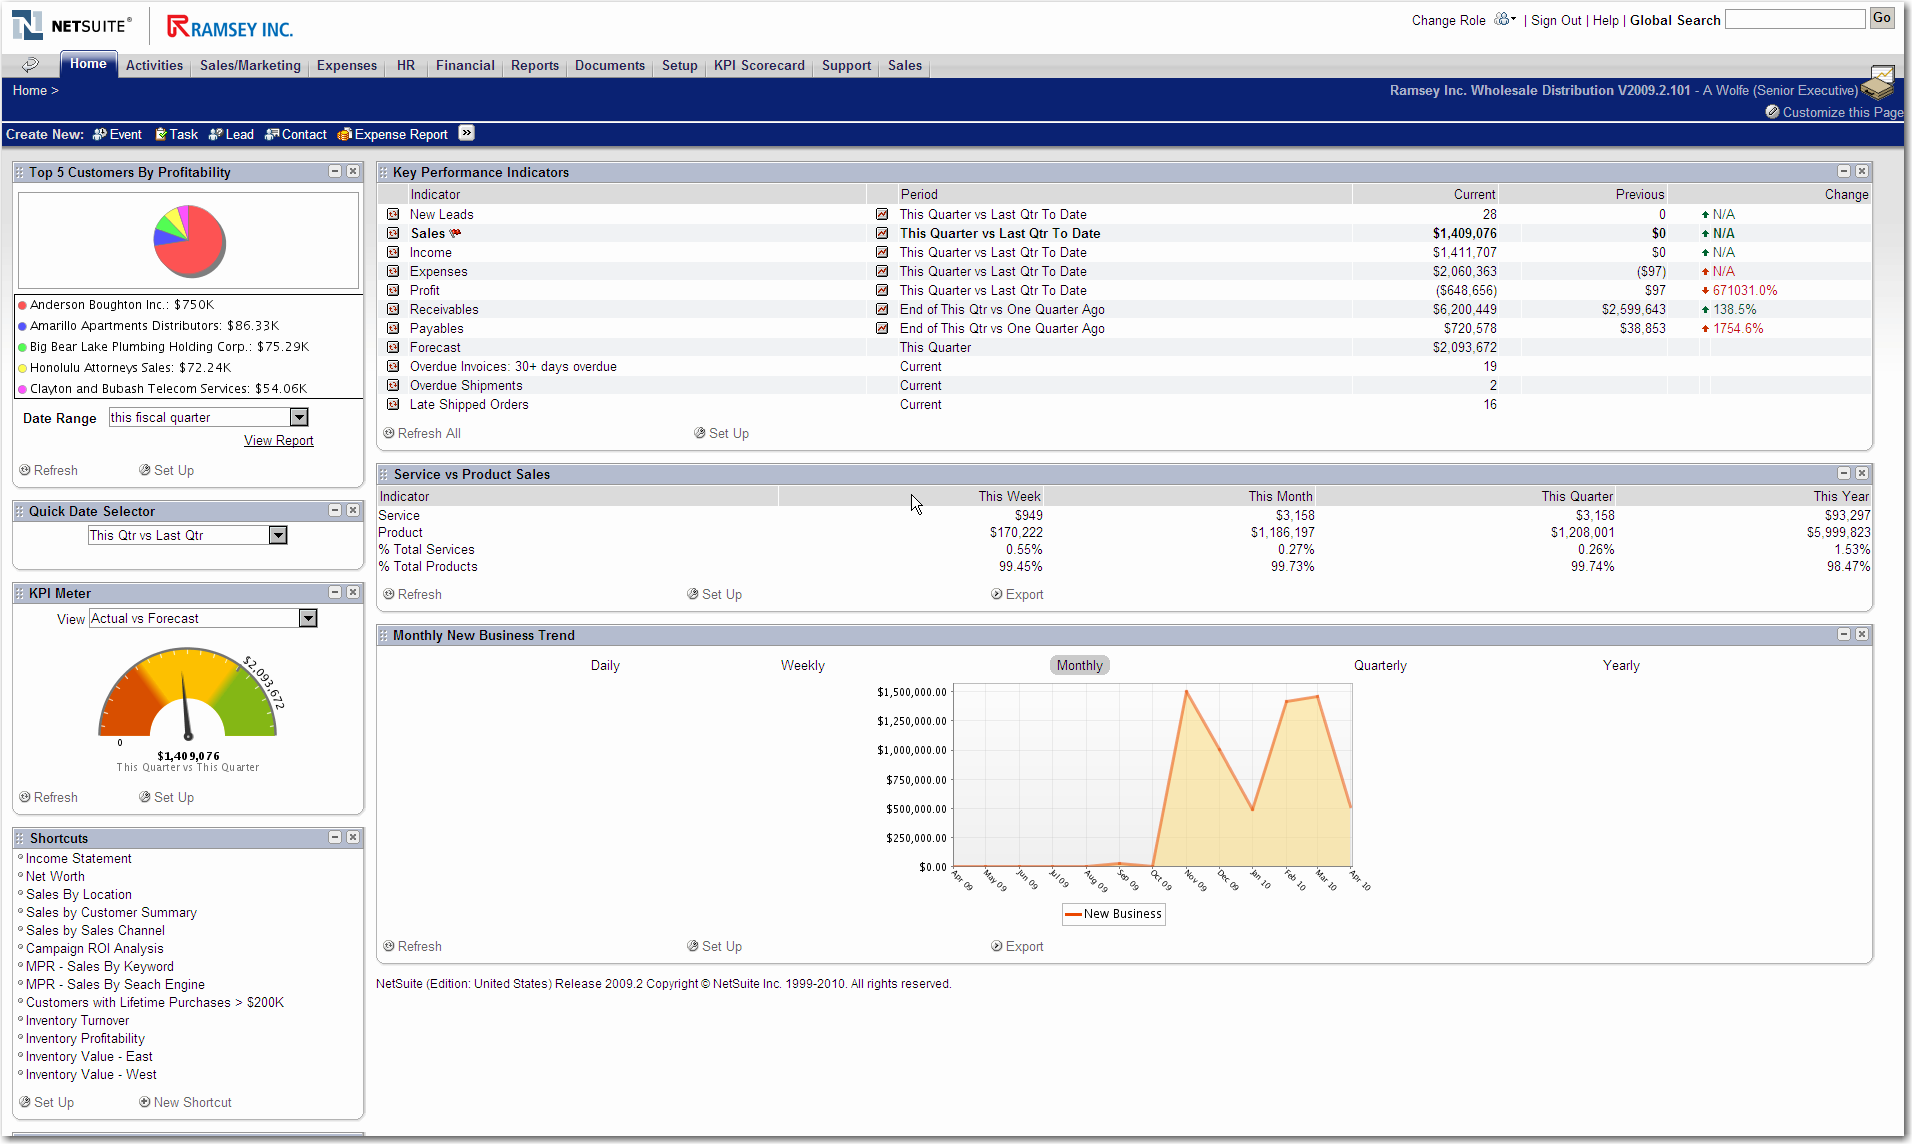 NetSuite - Senior Executive Dashboard